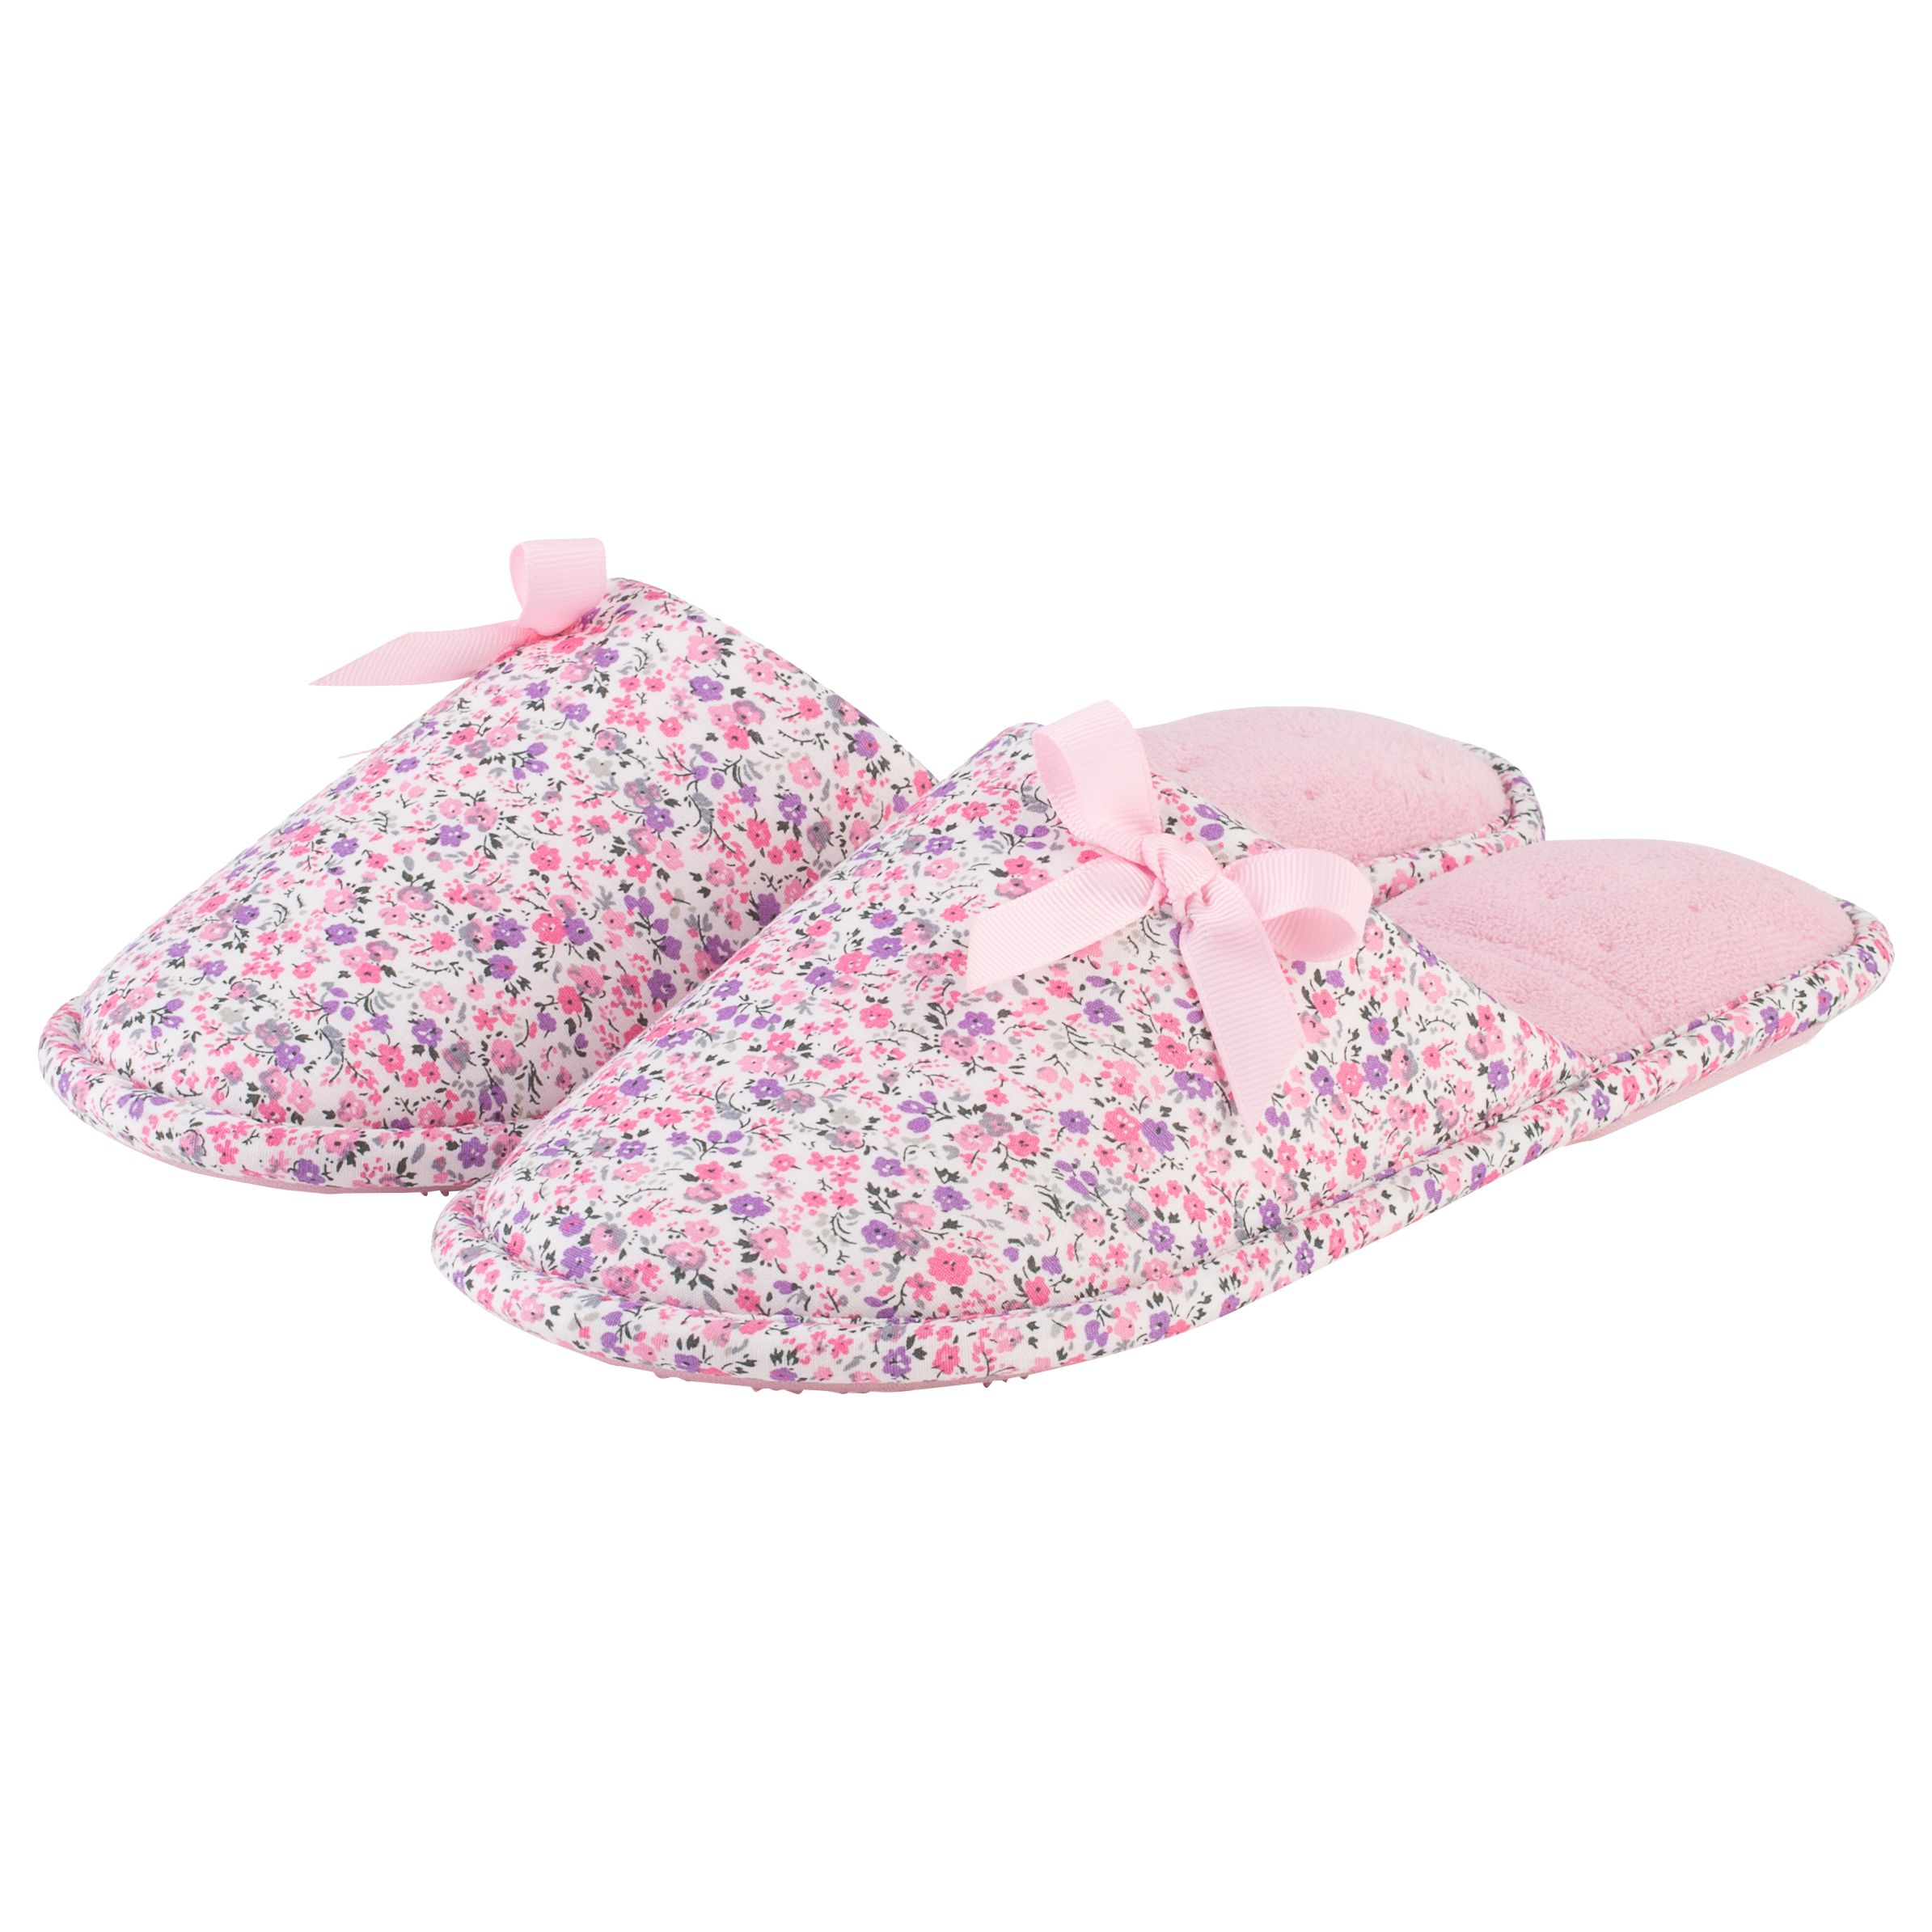 Totes Totes Floral Mule Slippers, Pink